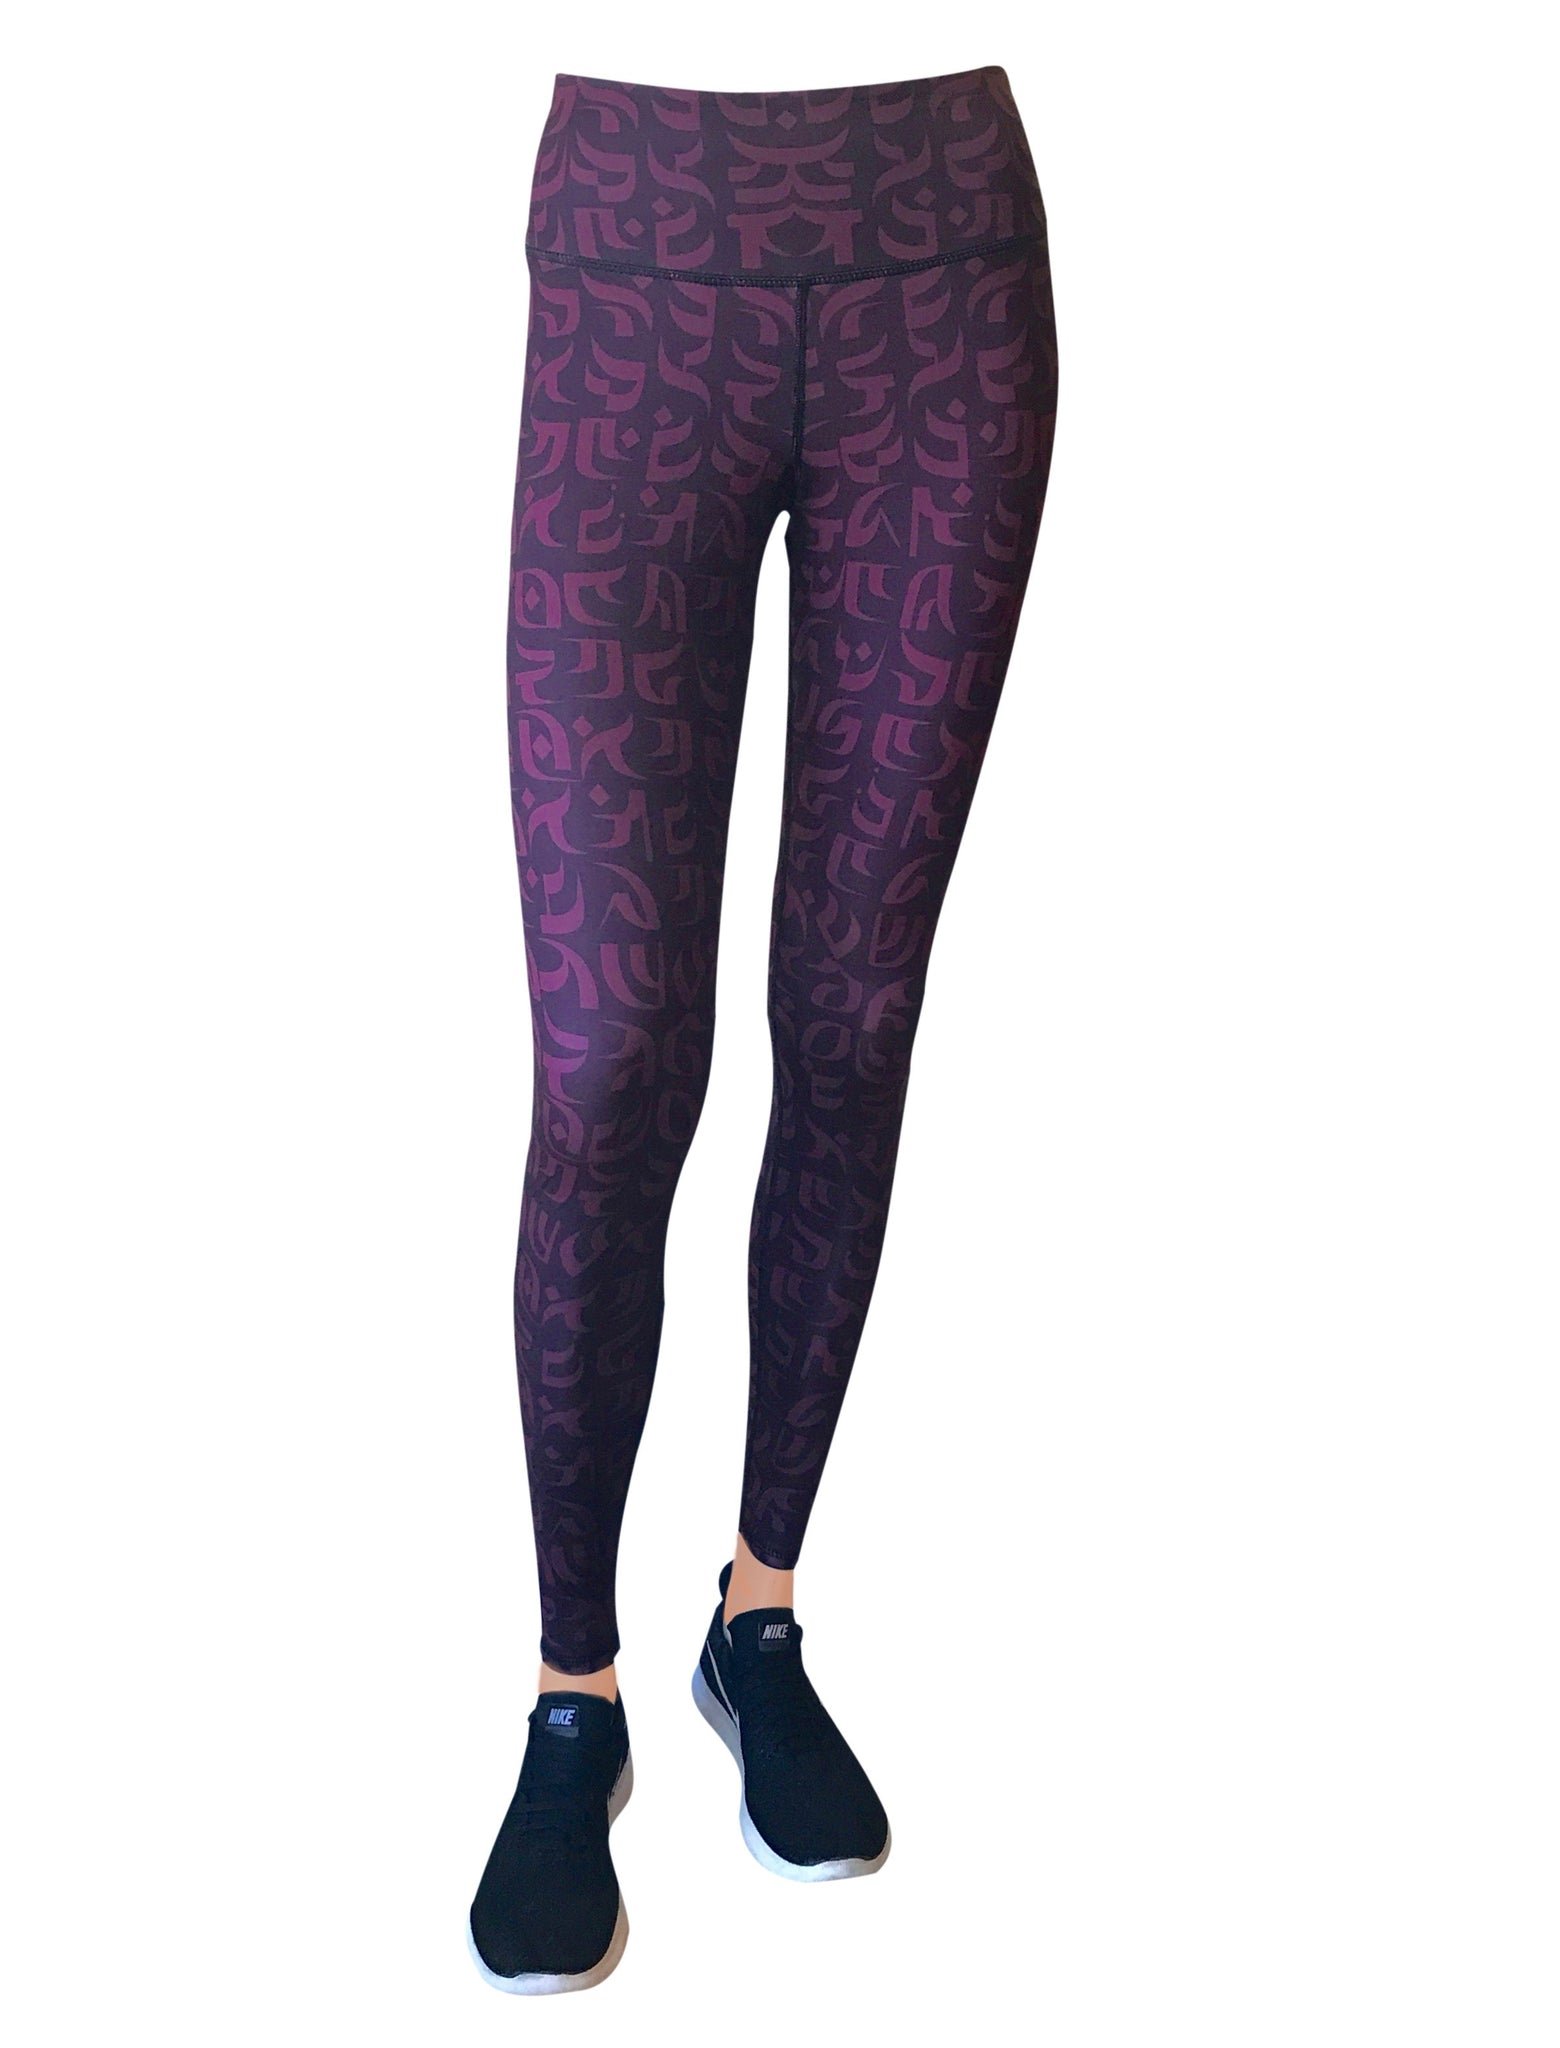 Marooned Cultura Leggings